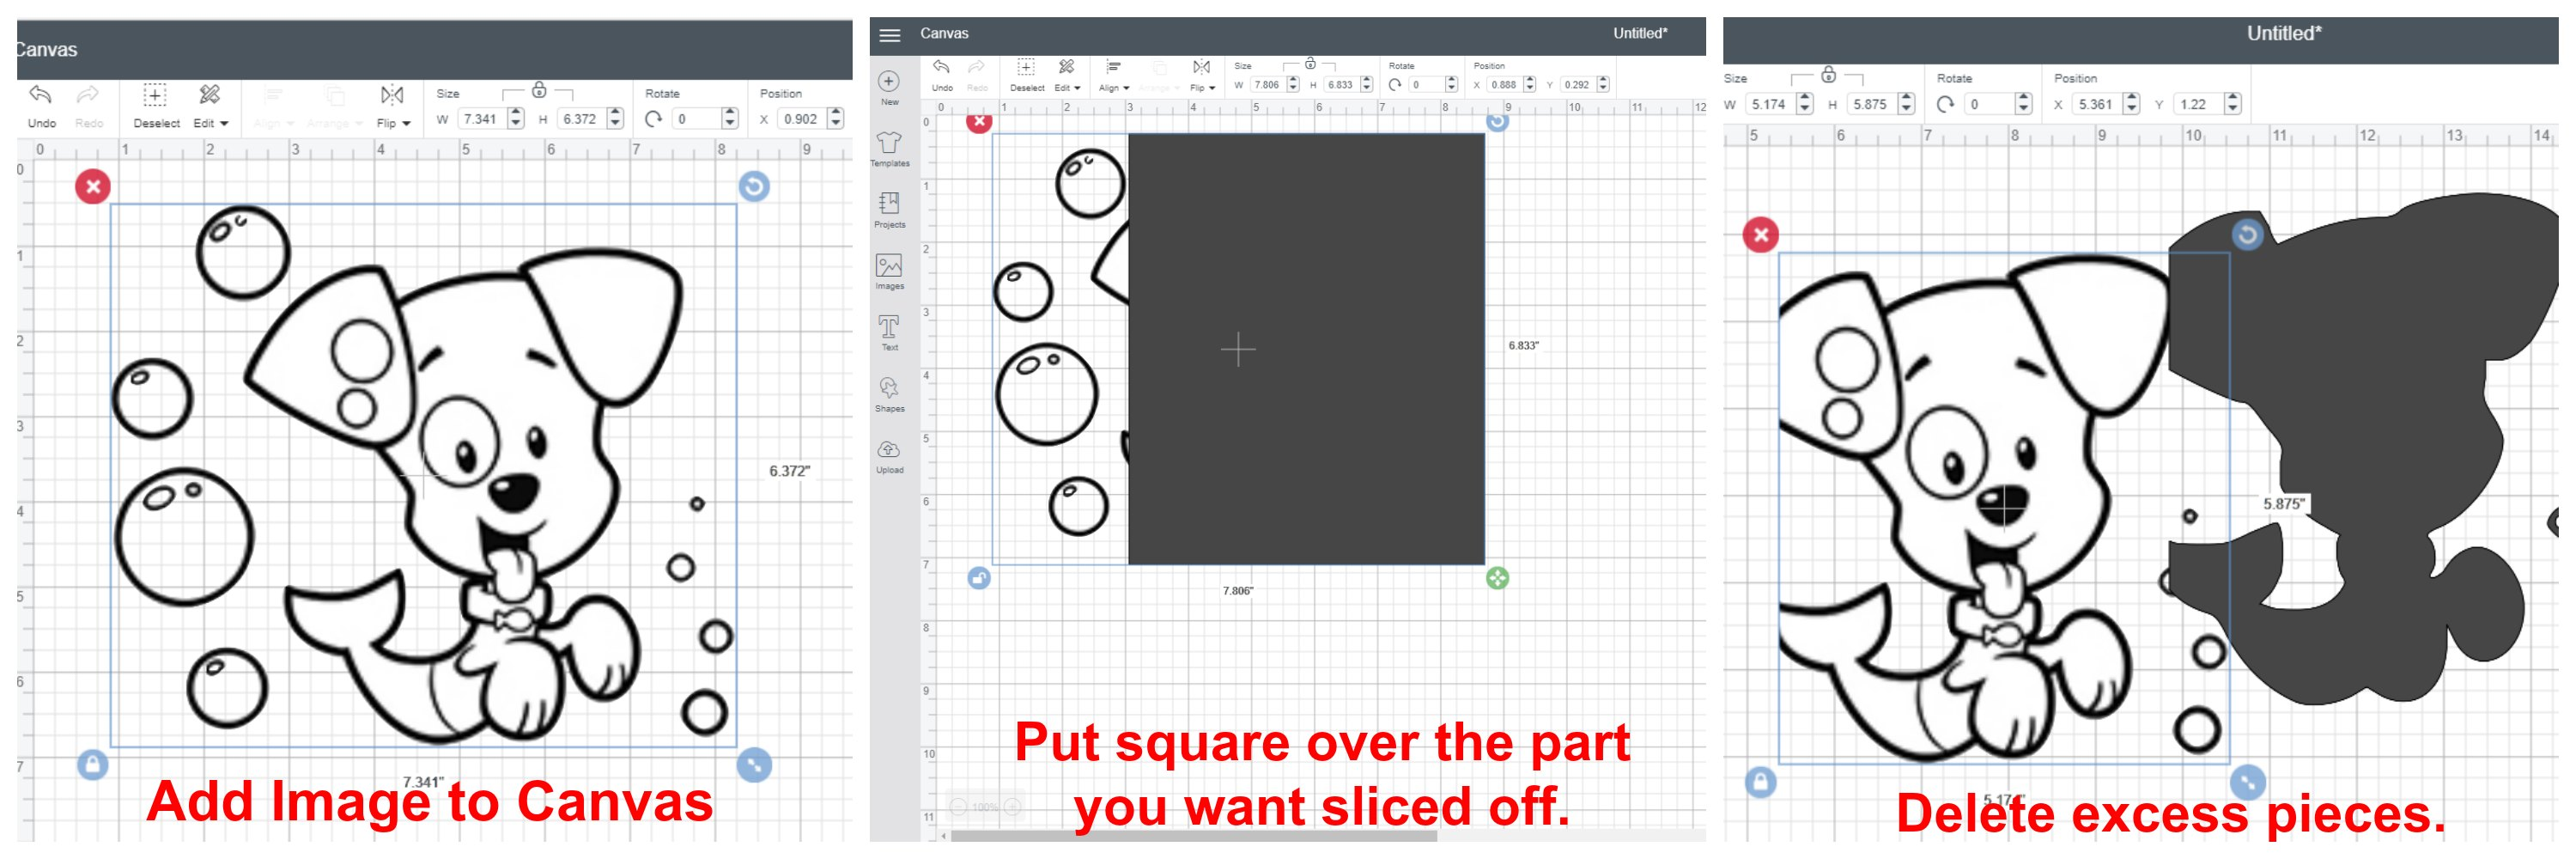 How to edit images in Cricut Design Space using the Slice tool.